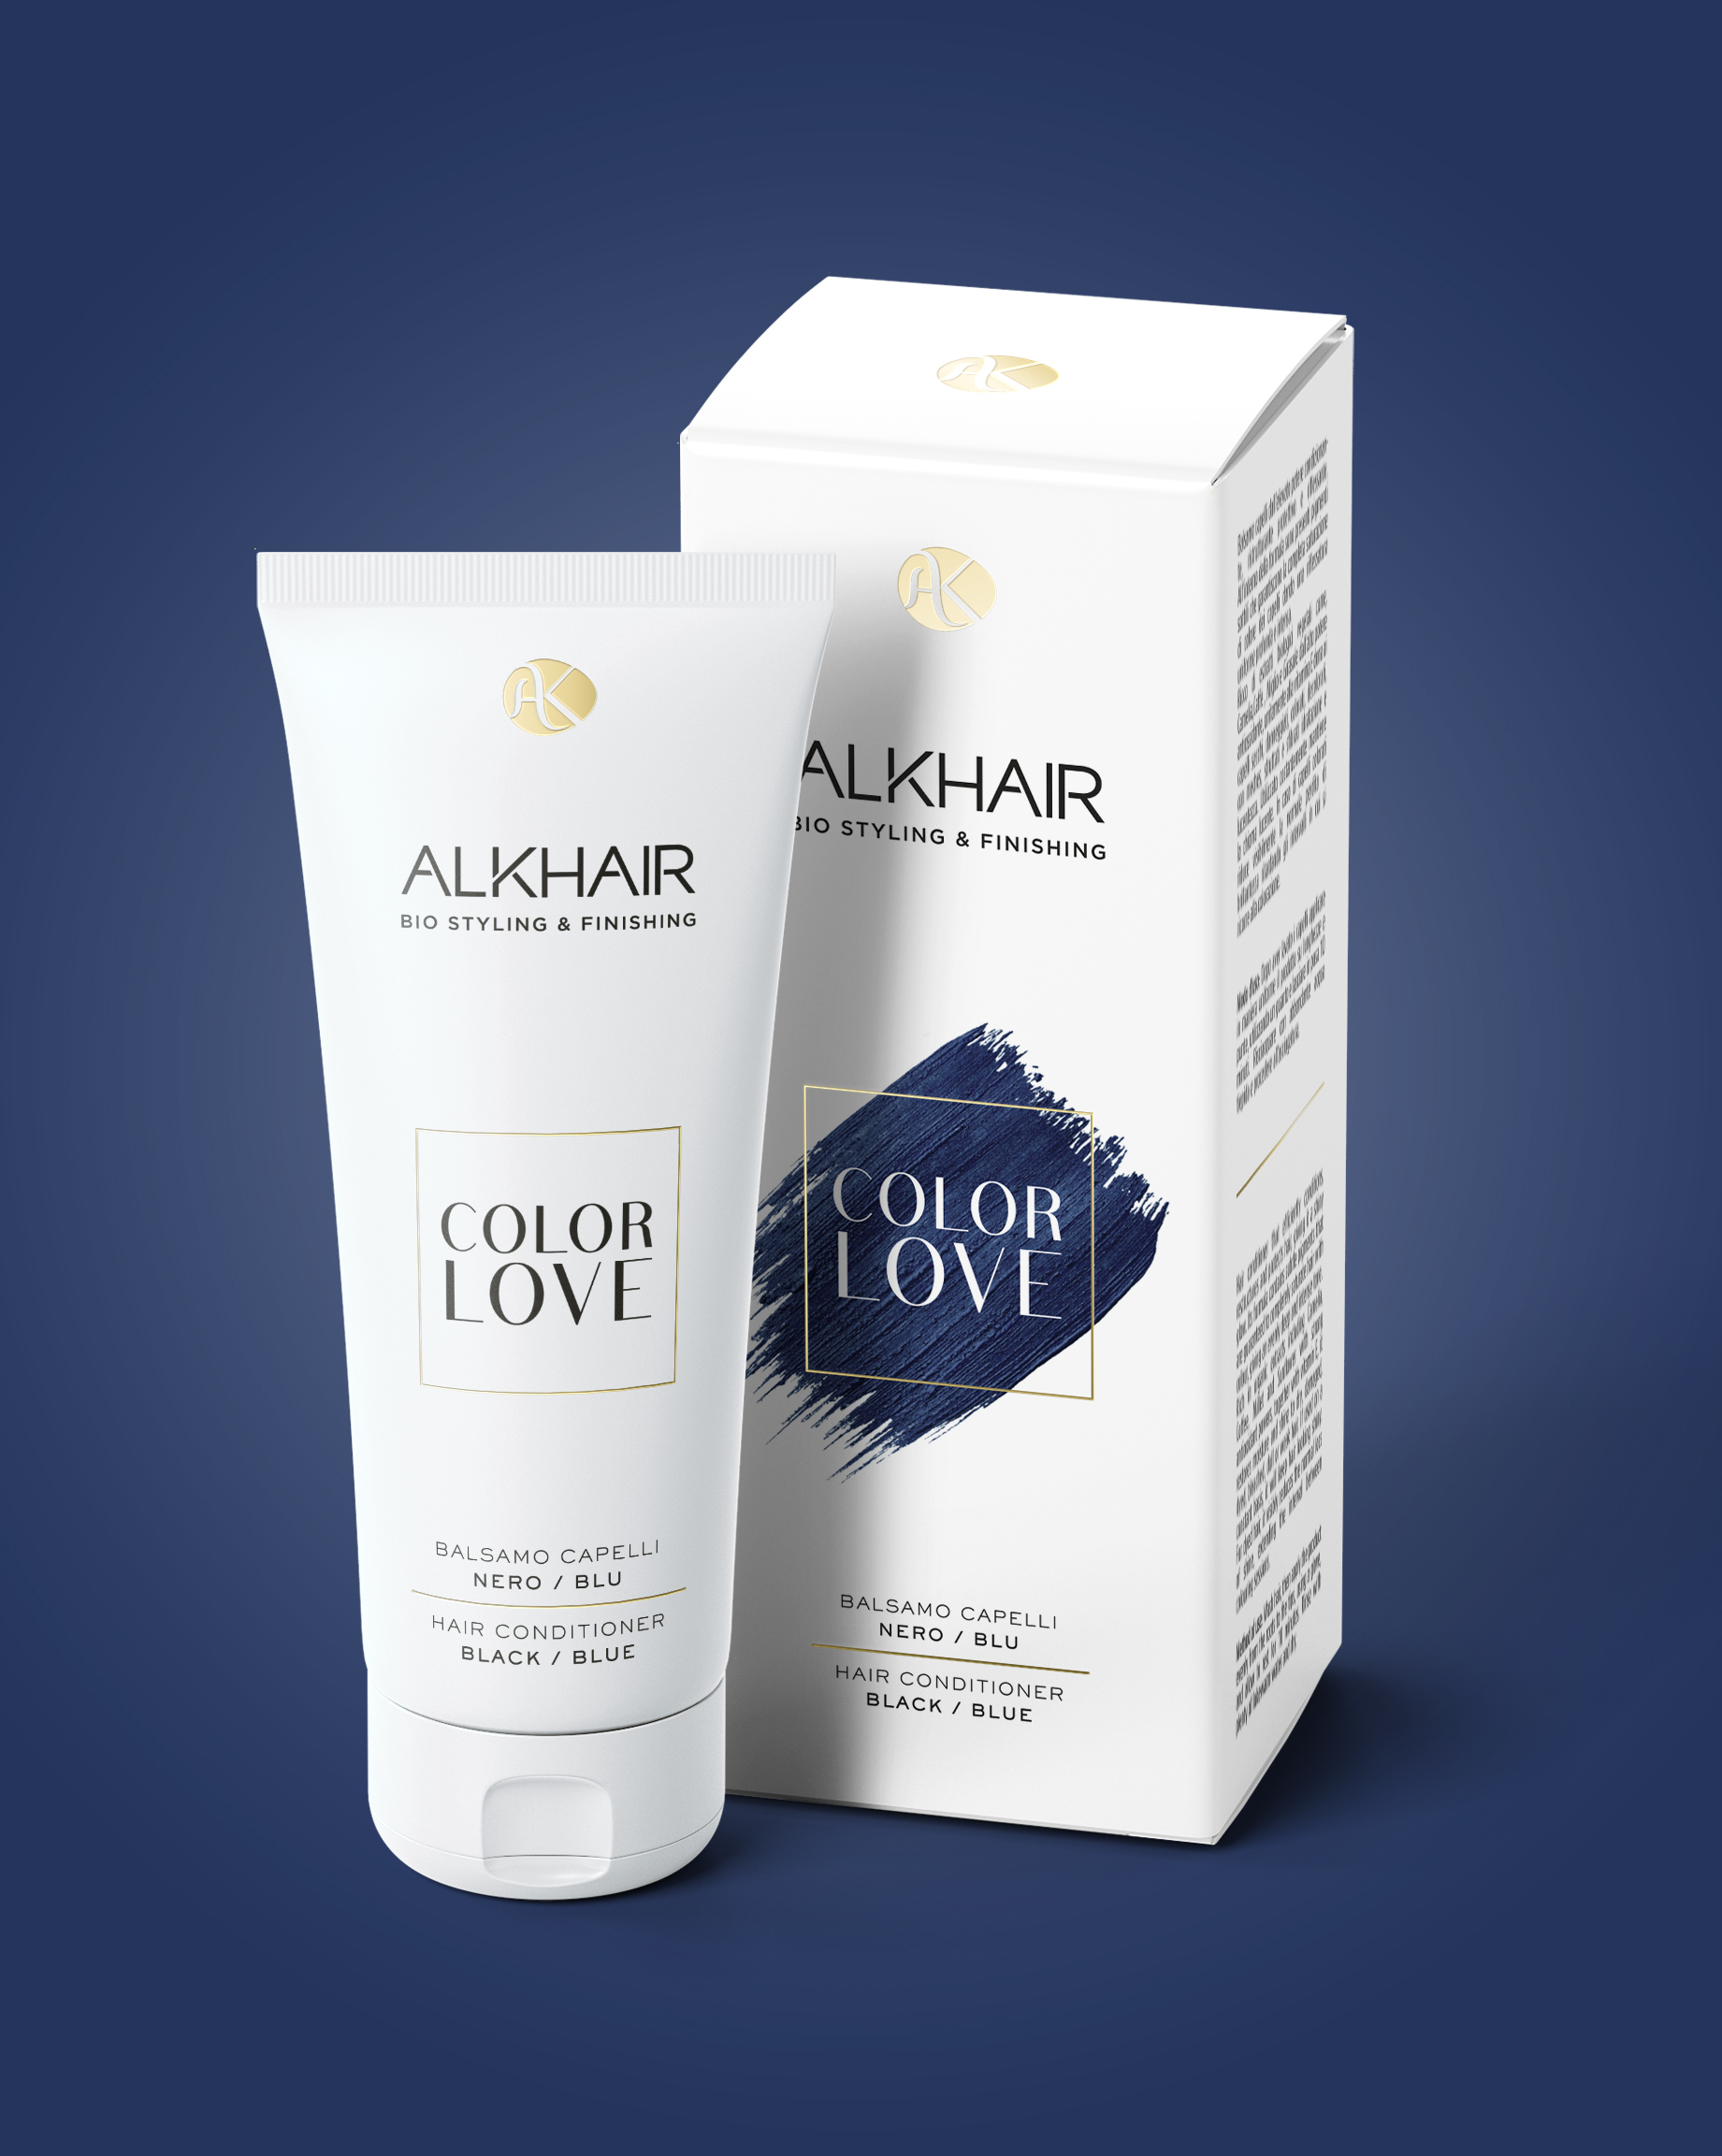 Alkhair Color Love pack